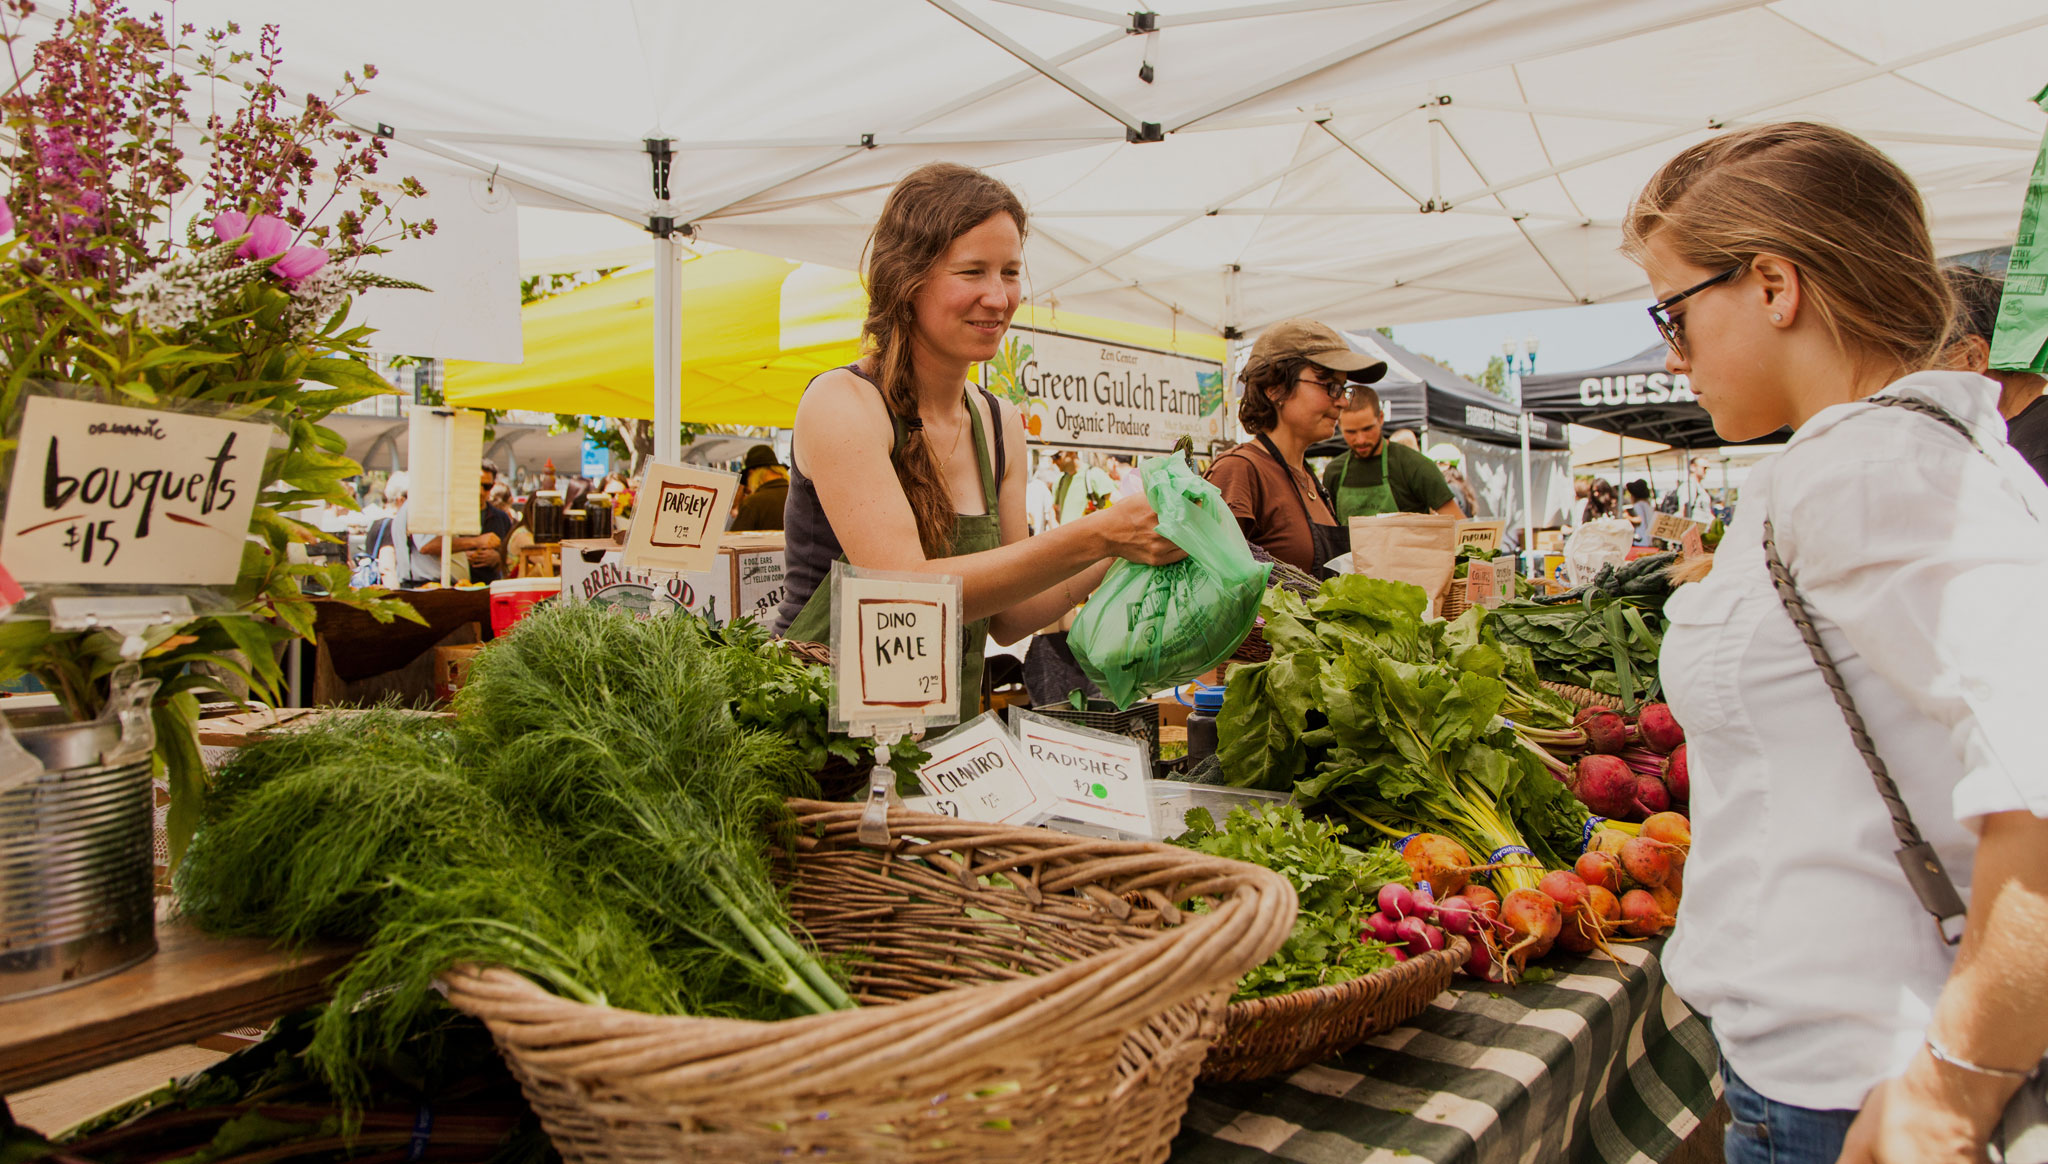 Farmer's Market - Get to Know Your Fruits and Vegetables